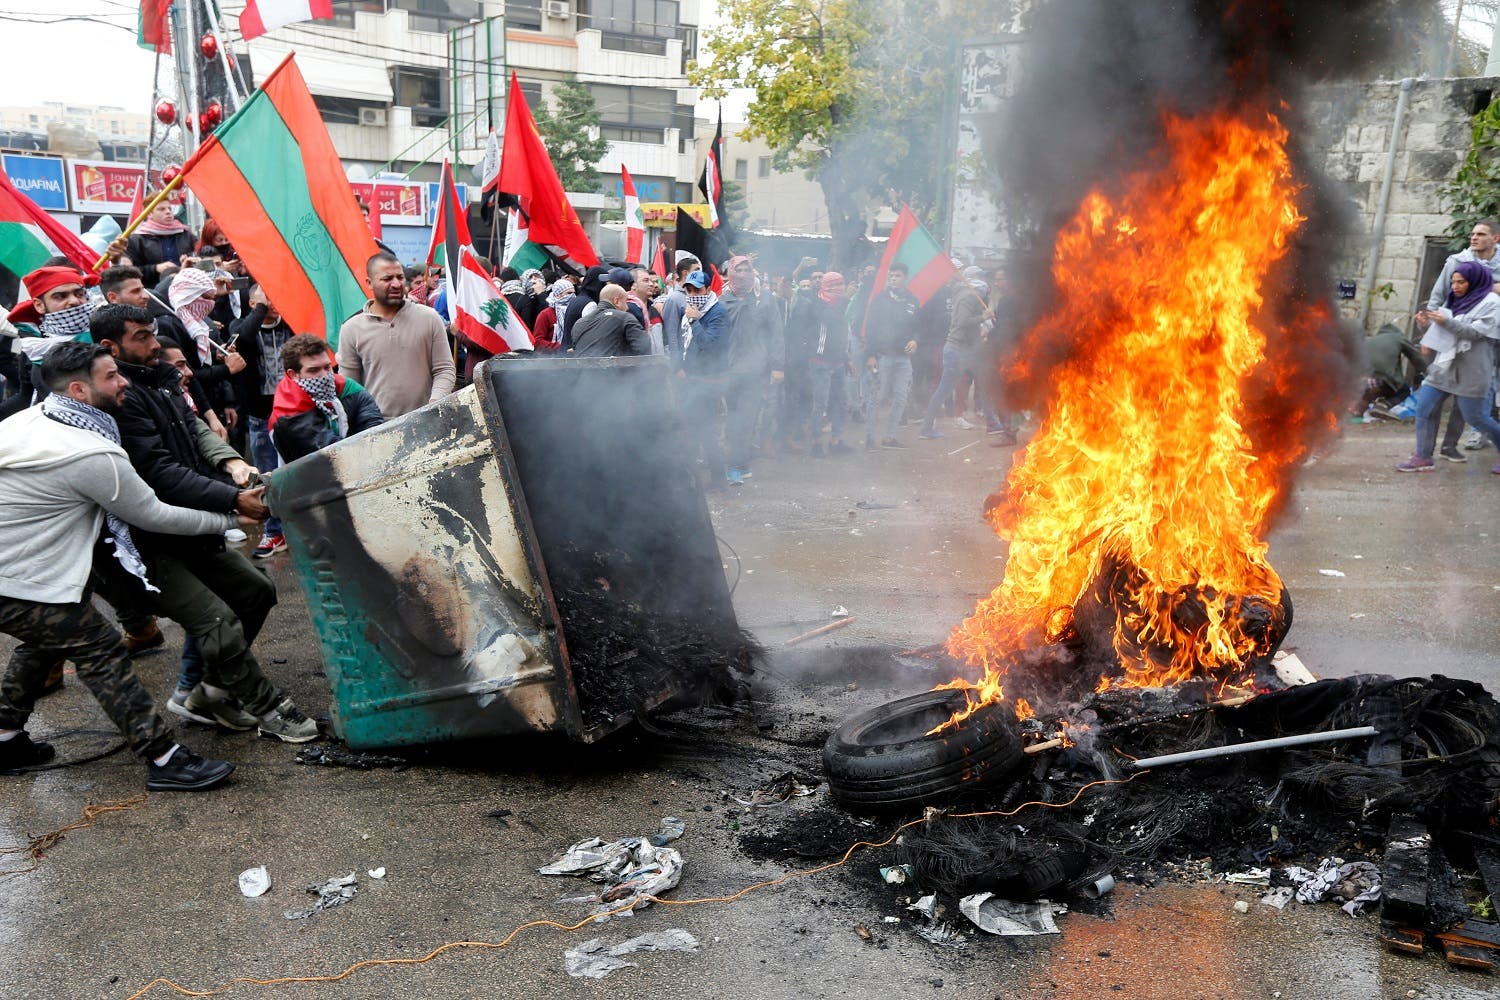 Protesters are seen near the U.S. embassy in Awkar, in Beirut, Lebanon December 10, 2017. (Reuters)